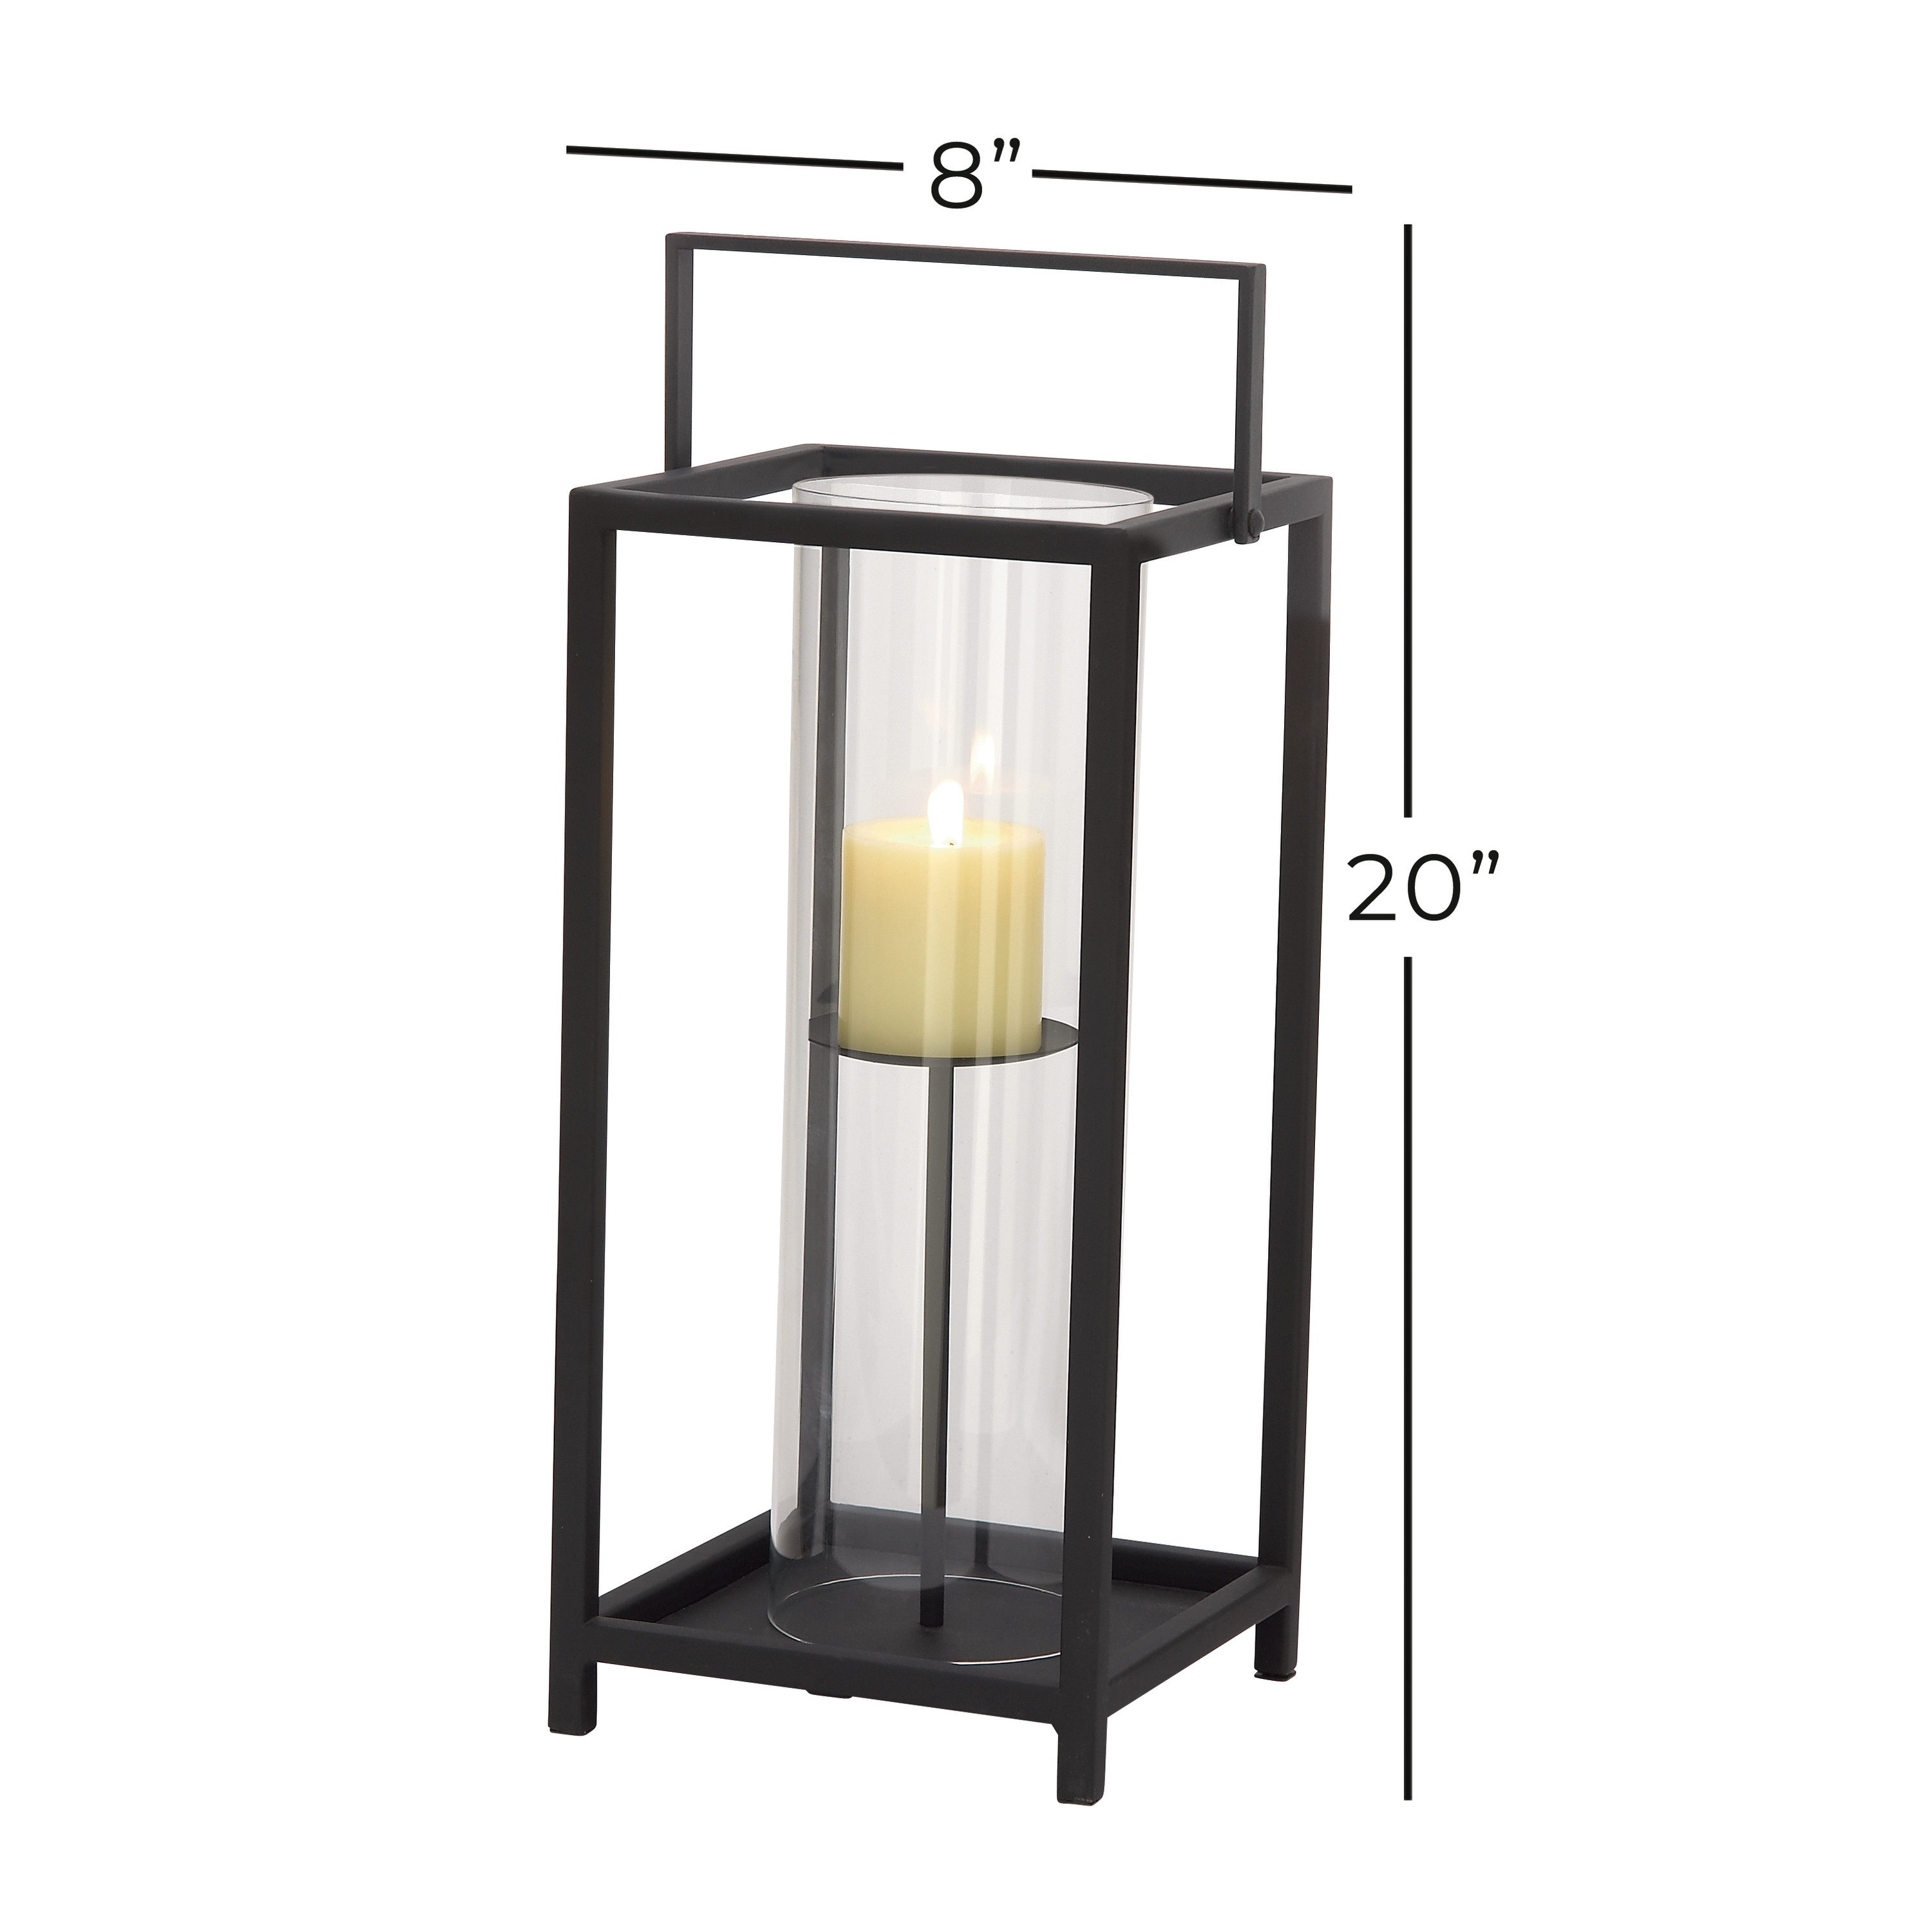 Decmode 44539 Large Rectangle Contemporary Iron And Glass Candle Holder In Black Finish W Metal Handle 8 X20 Walmart Com Walmart Com